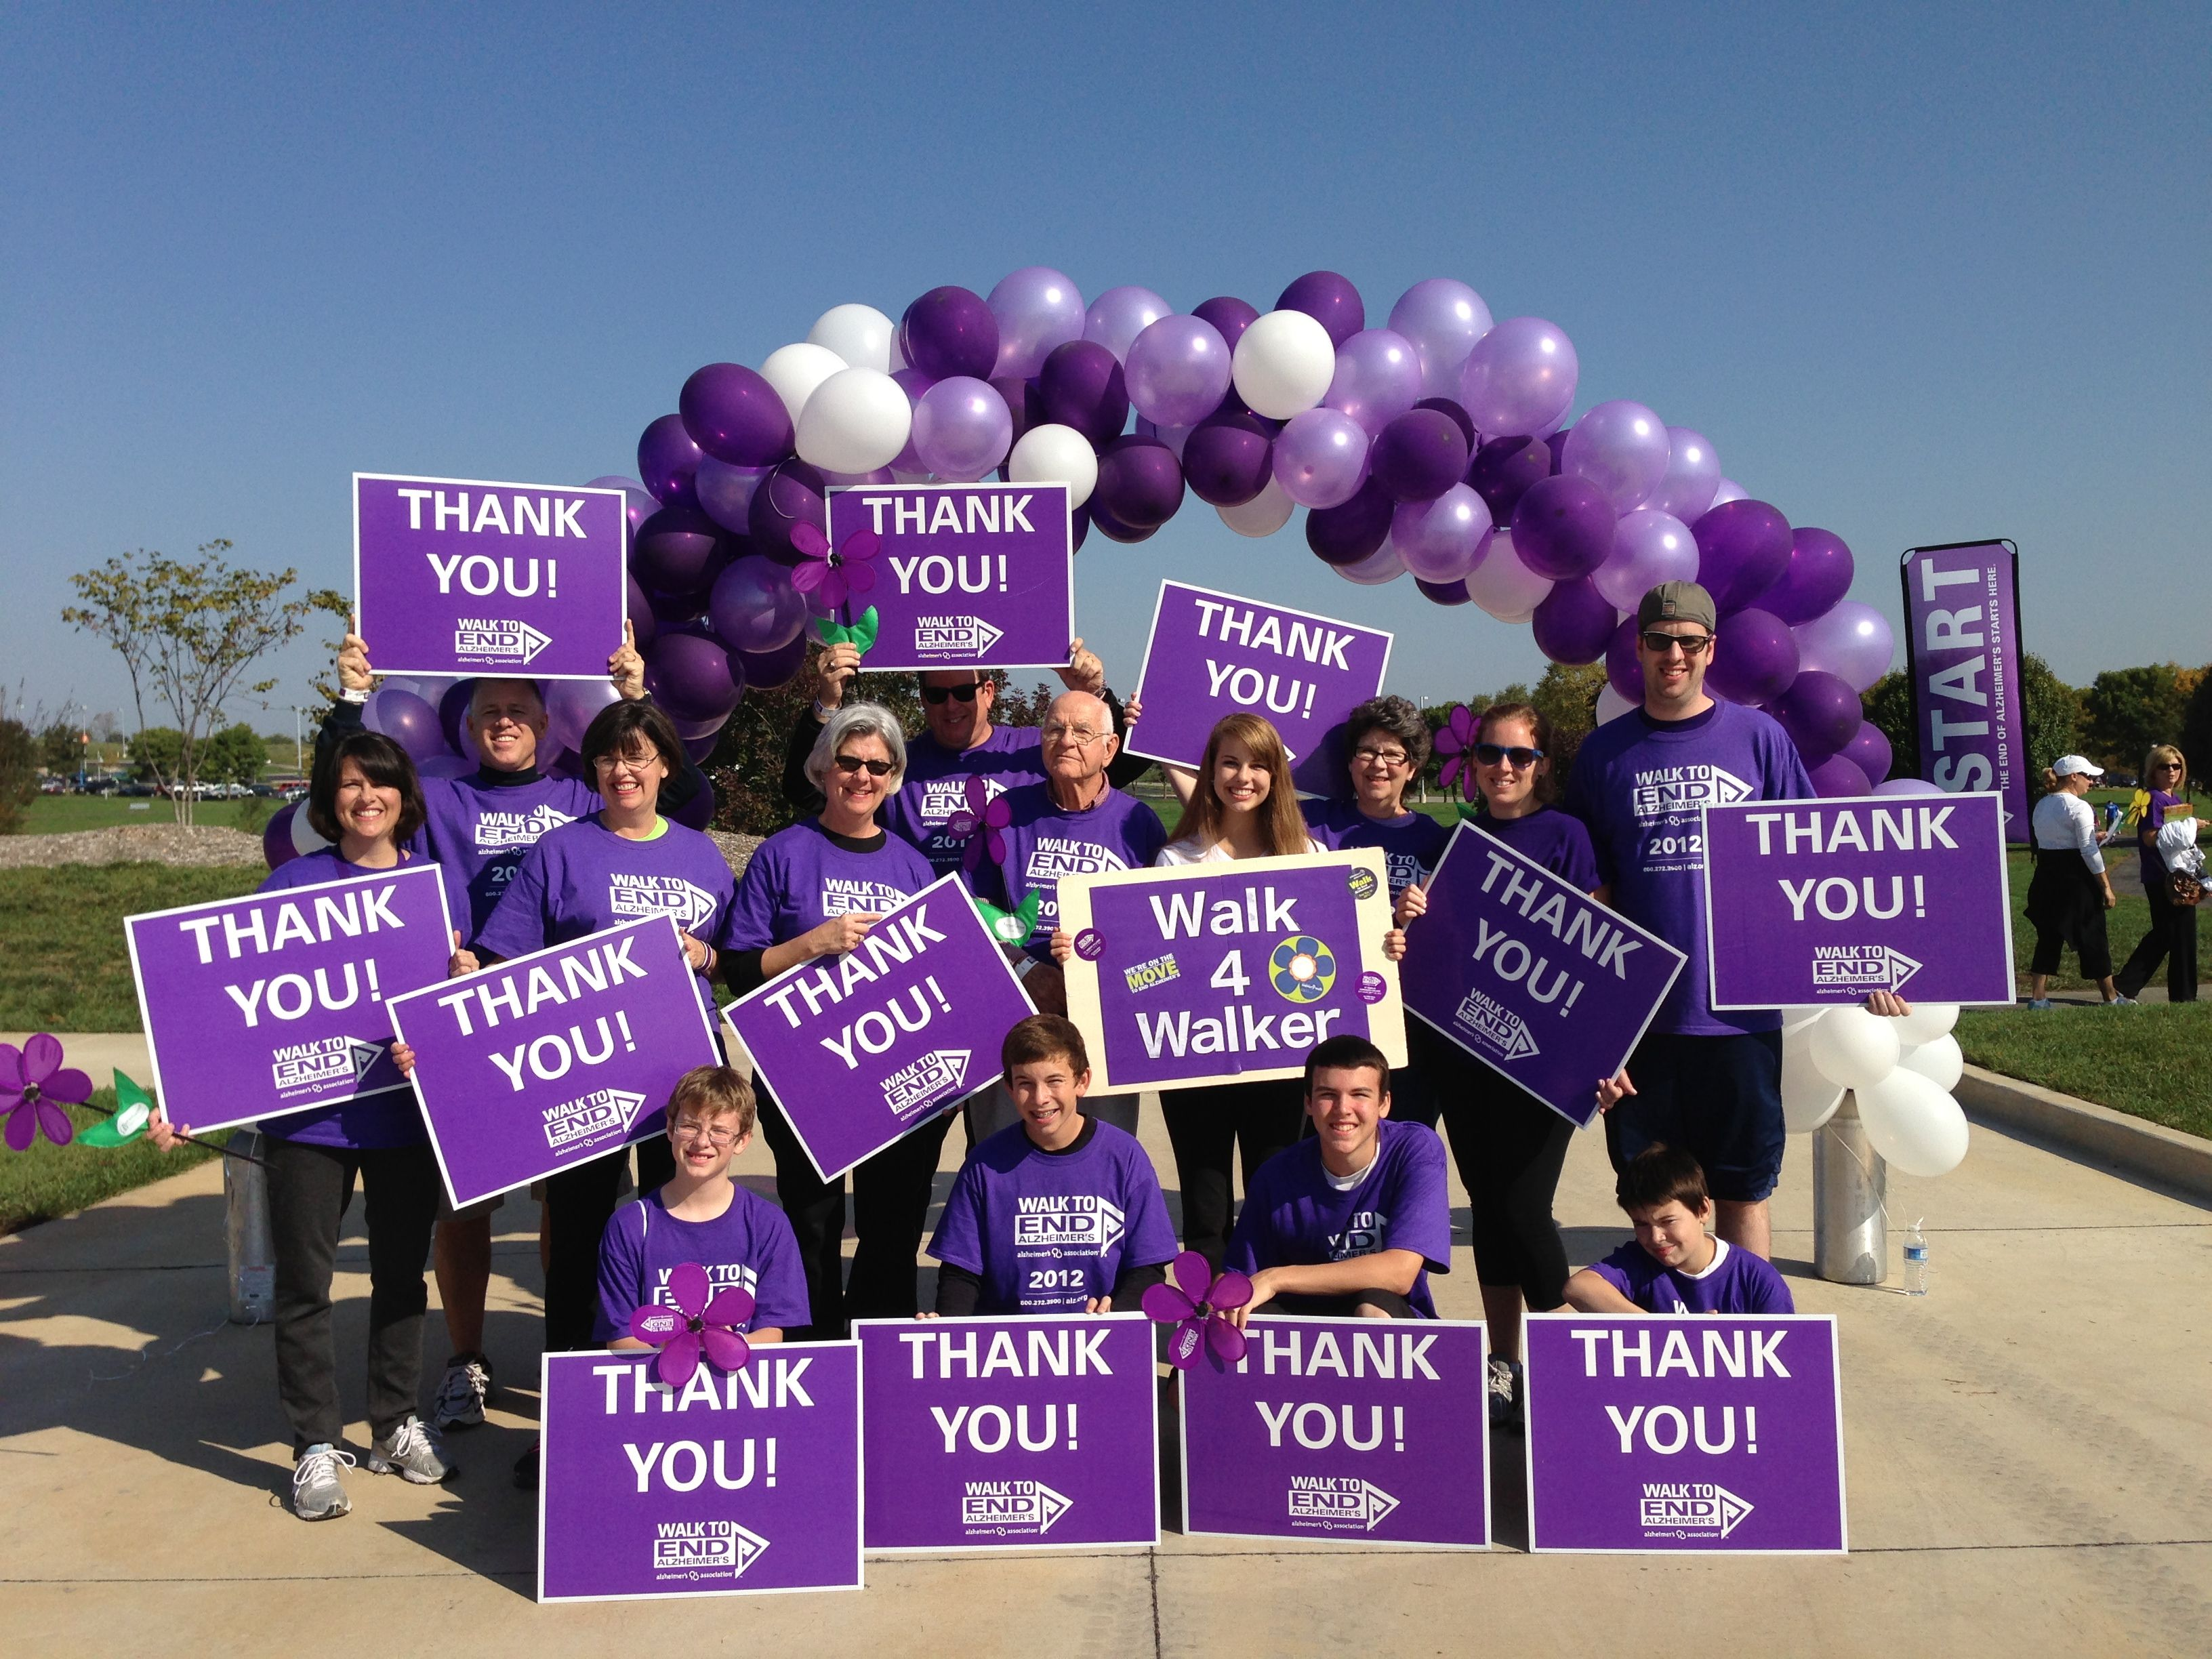 We are walking for a World WITHOUT Alzheimer's. Thank you